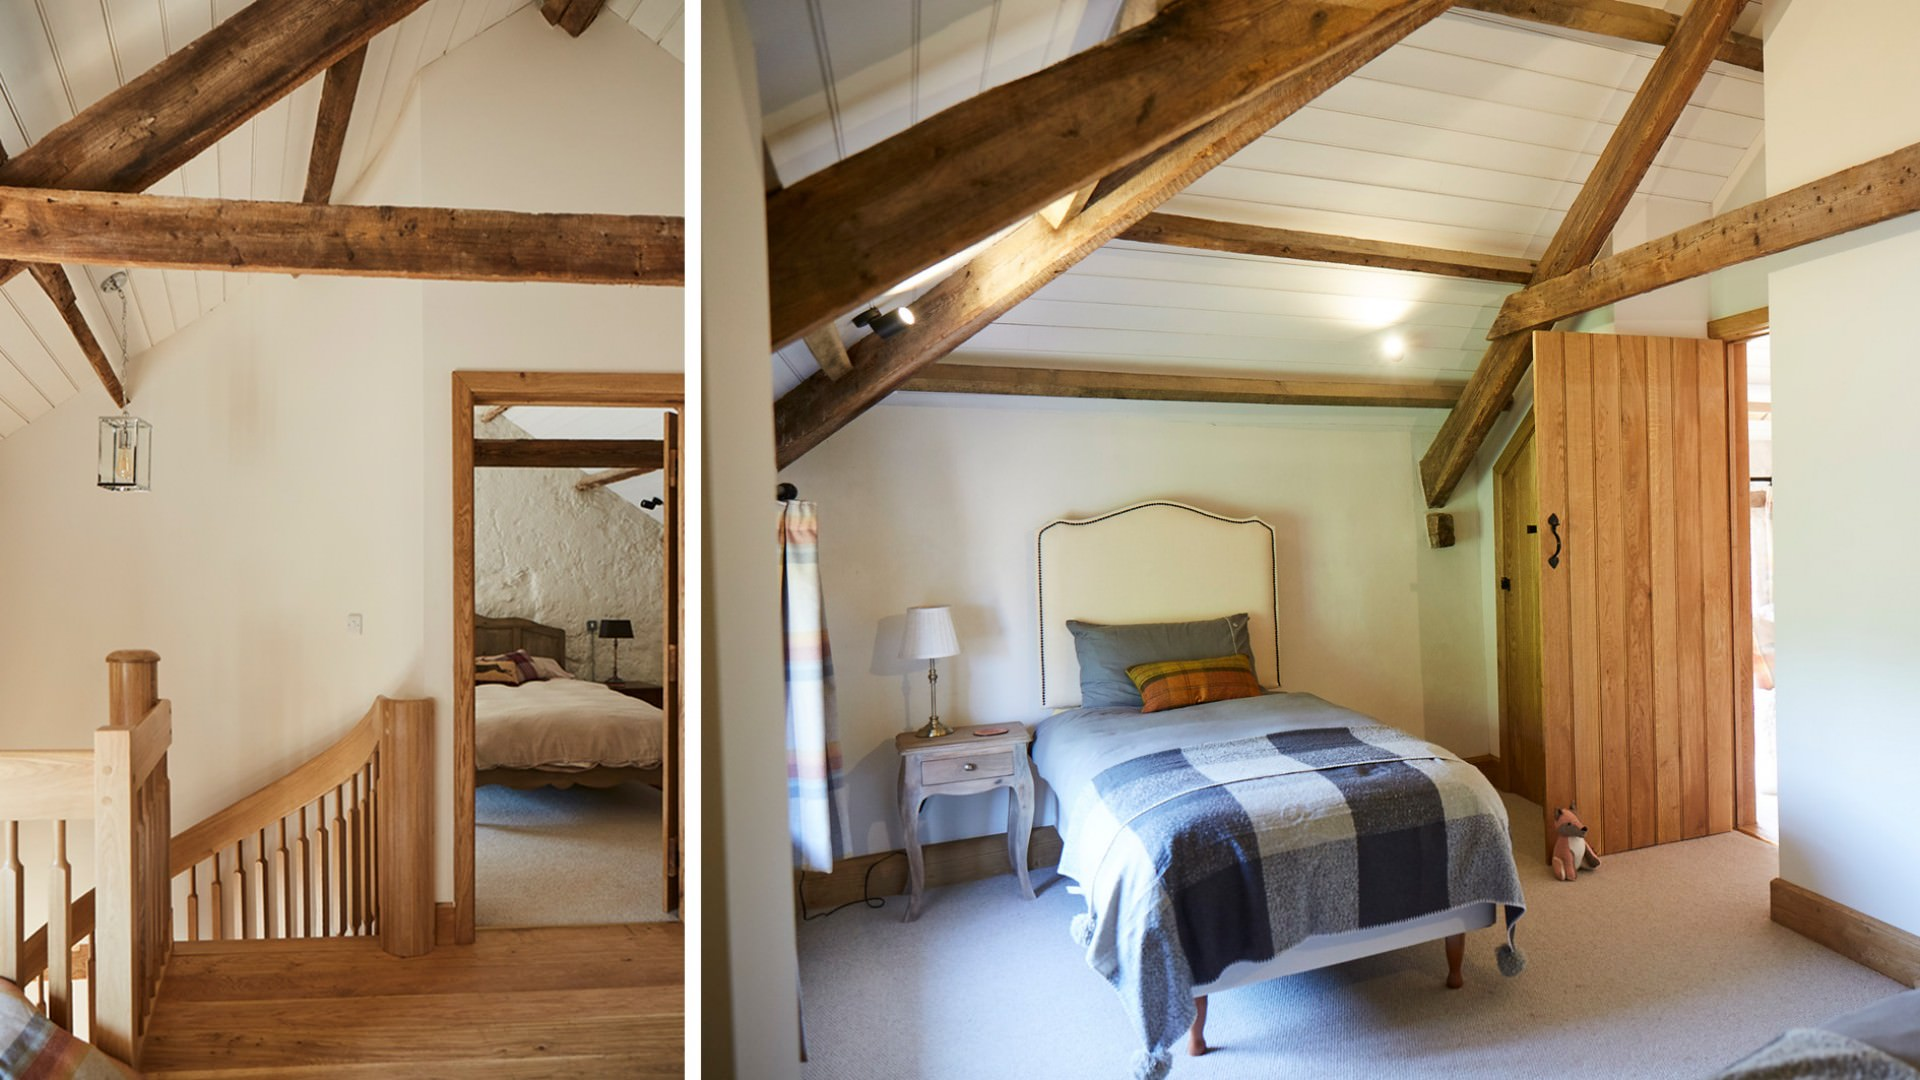 9 1137A barn conversion conservation stairs and bed